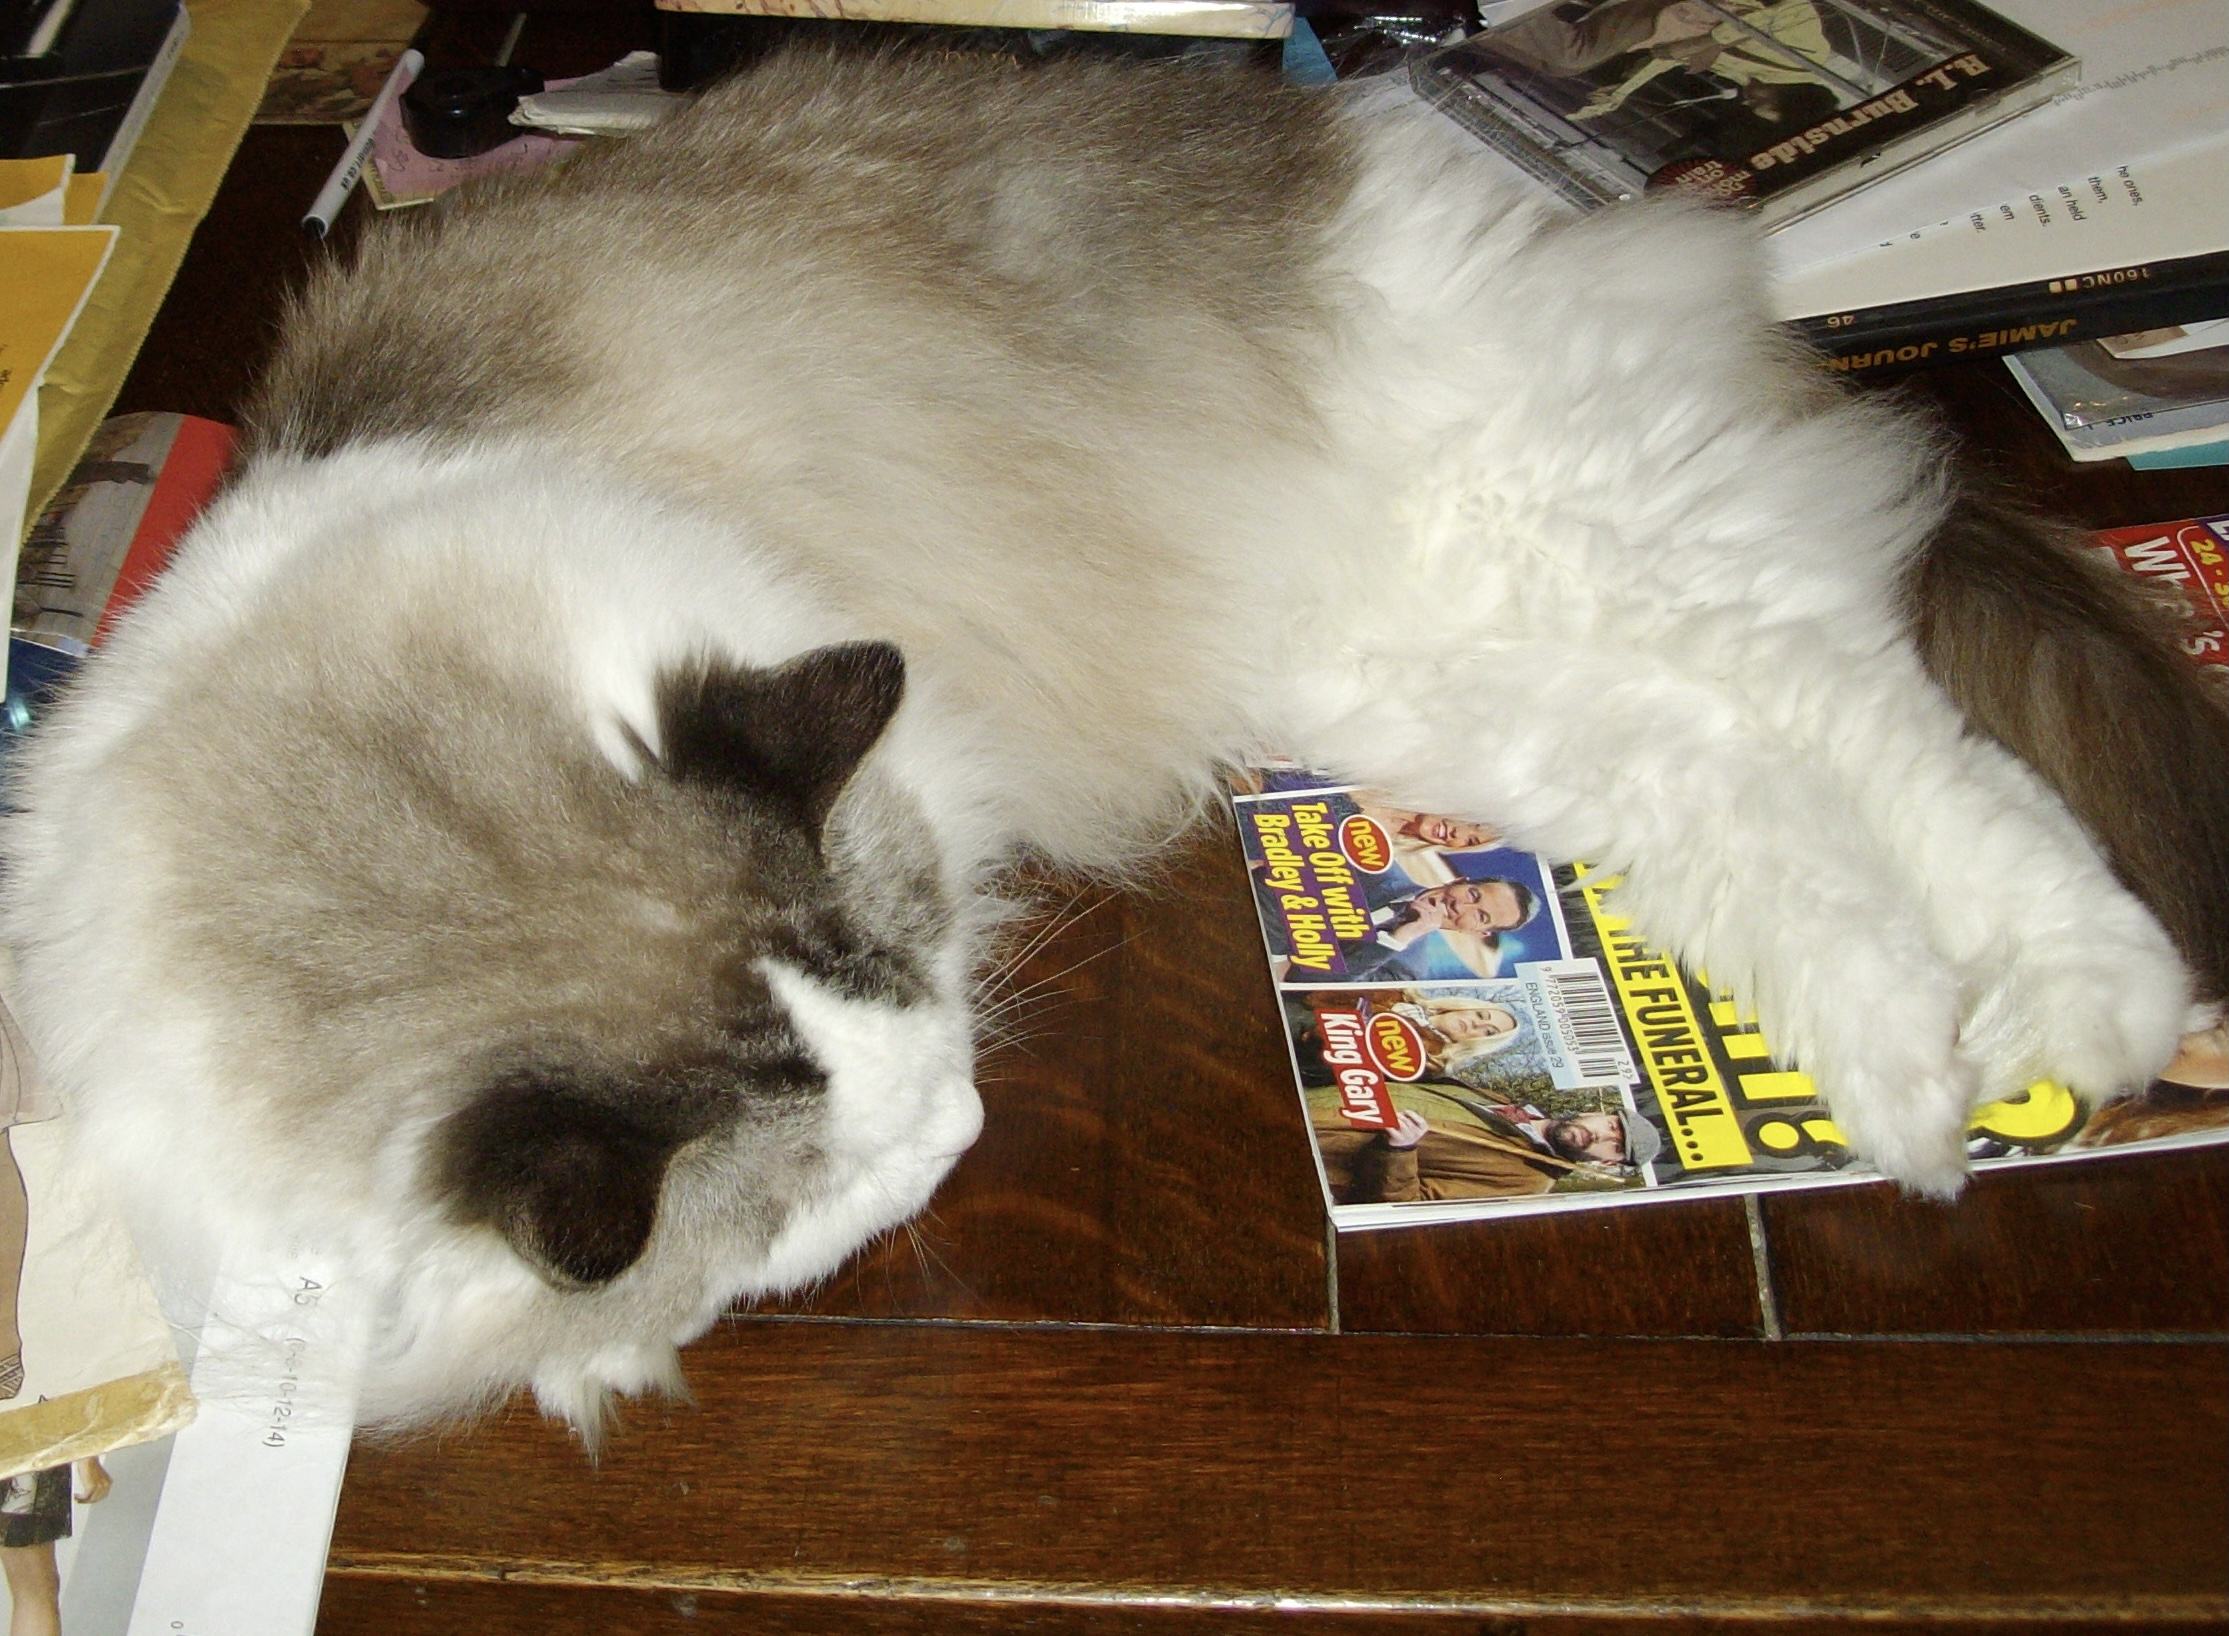 Pearl laid on some magazines